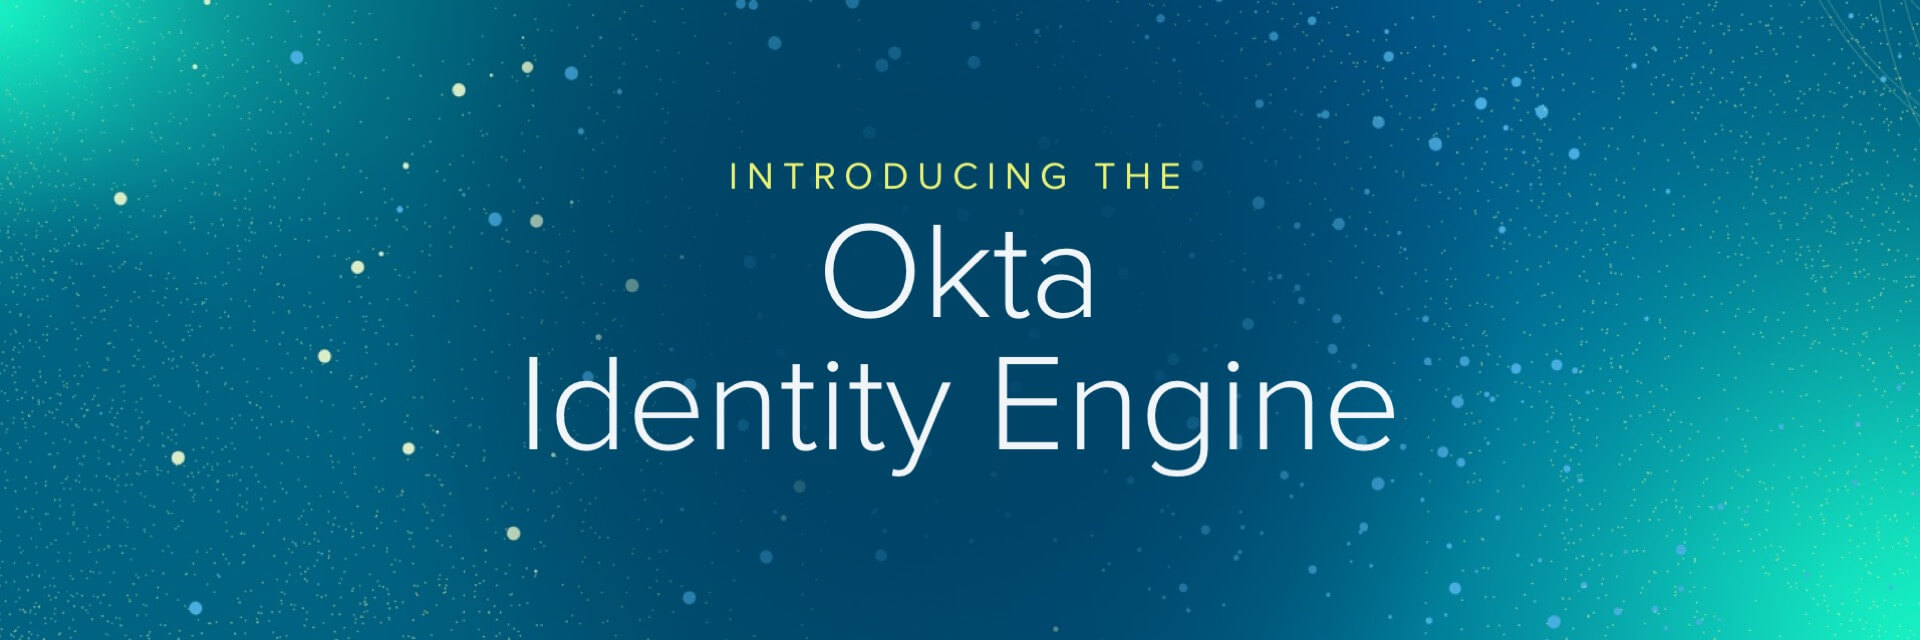 Okta Identity Engine Blog post